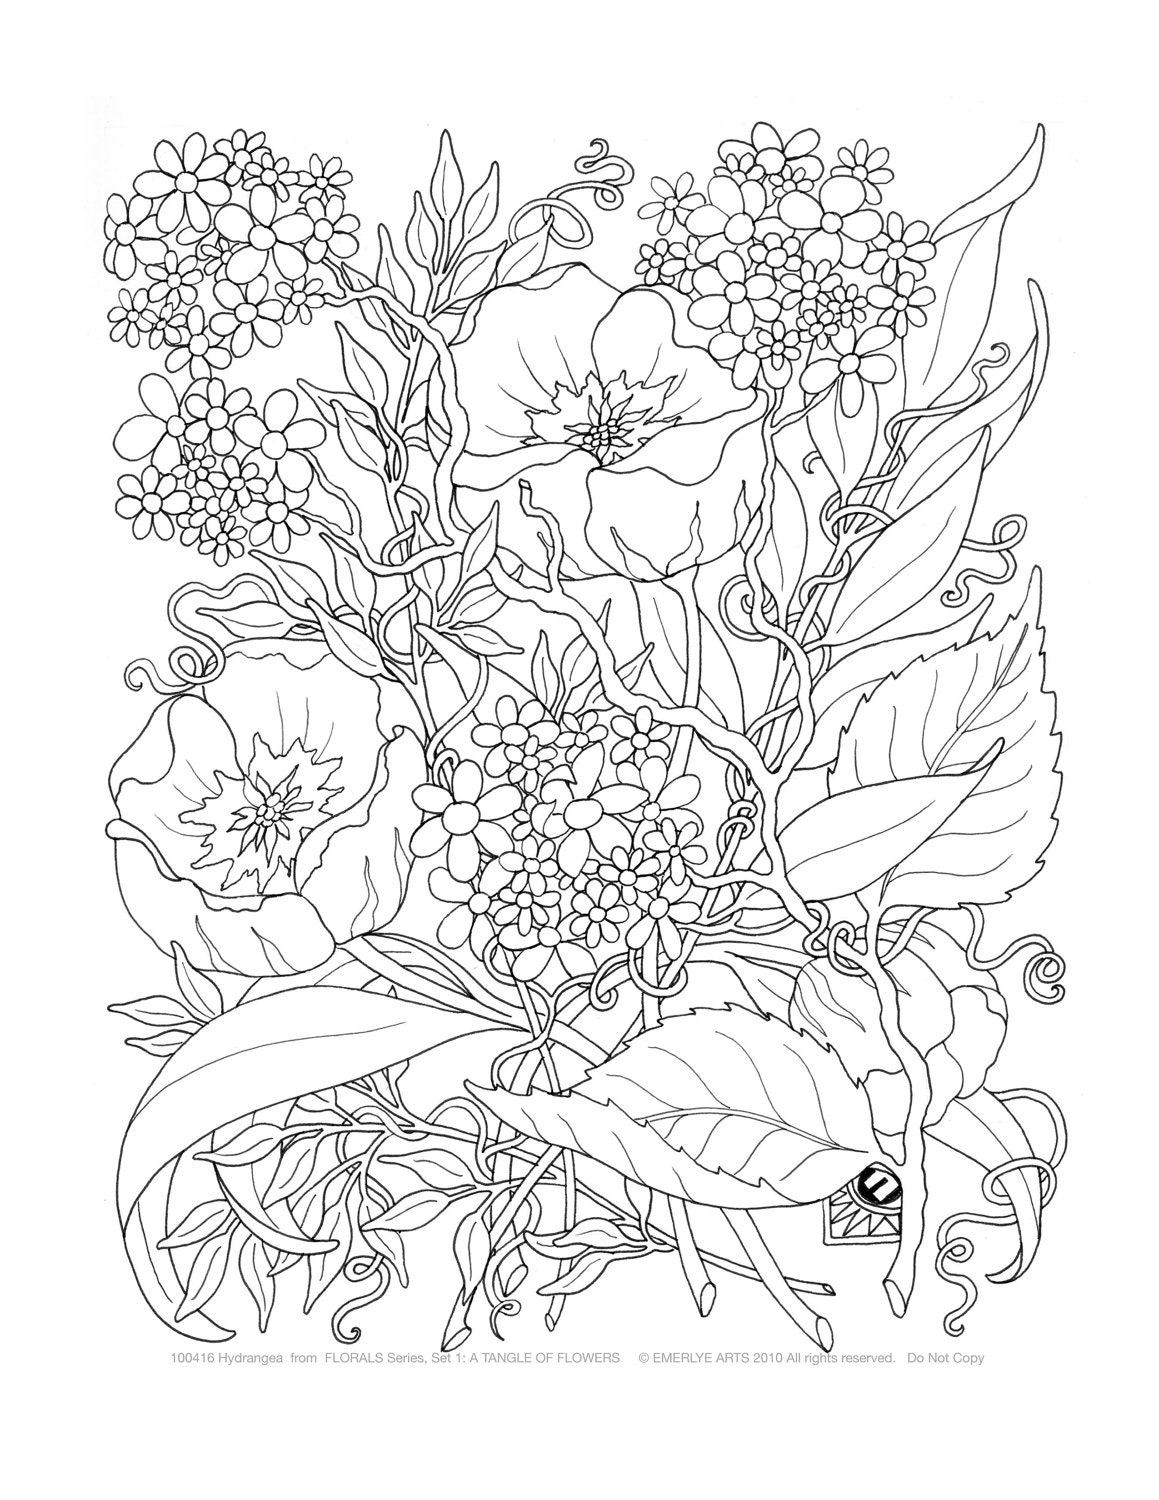 It's just a photo of Adorable Printable Coloring Pages for Adults Flowers